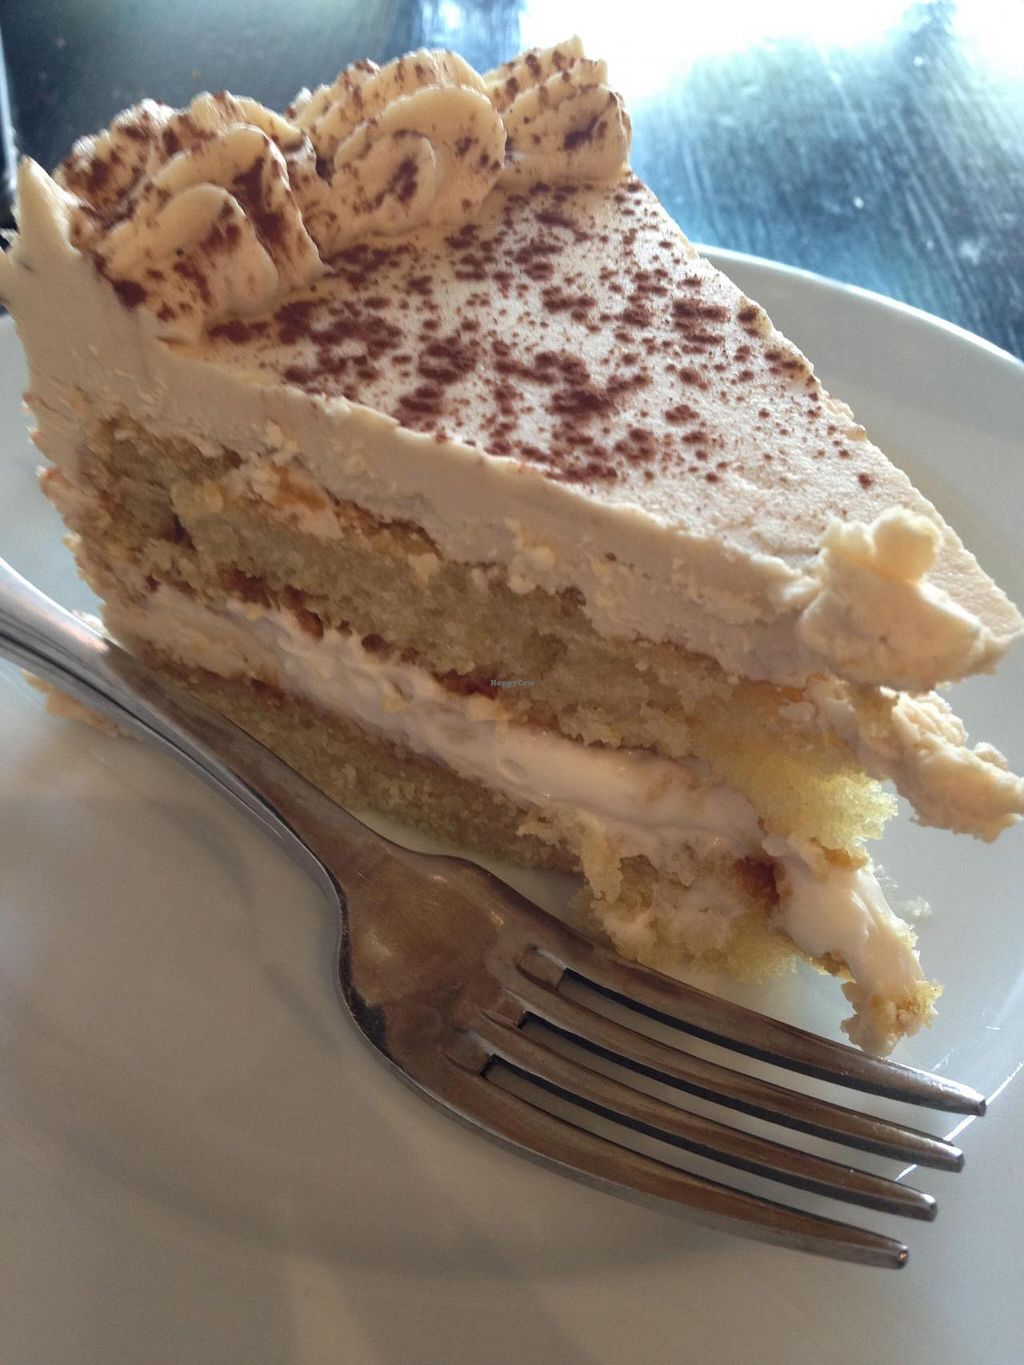 "Photo of Timeless Coffee Roasters and Bakery  by <a href=""/members/profile/jamiemichelle_xvx"">jamiemichelle_xvx</a> <br/>Tiramisu cake <br/> June 5, 2014  - <a href='/contact/abuse/image/36793/71408'>Report</a>"